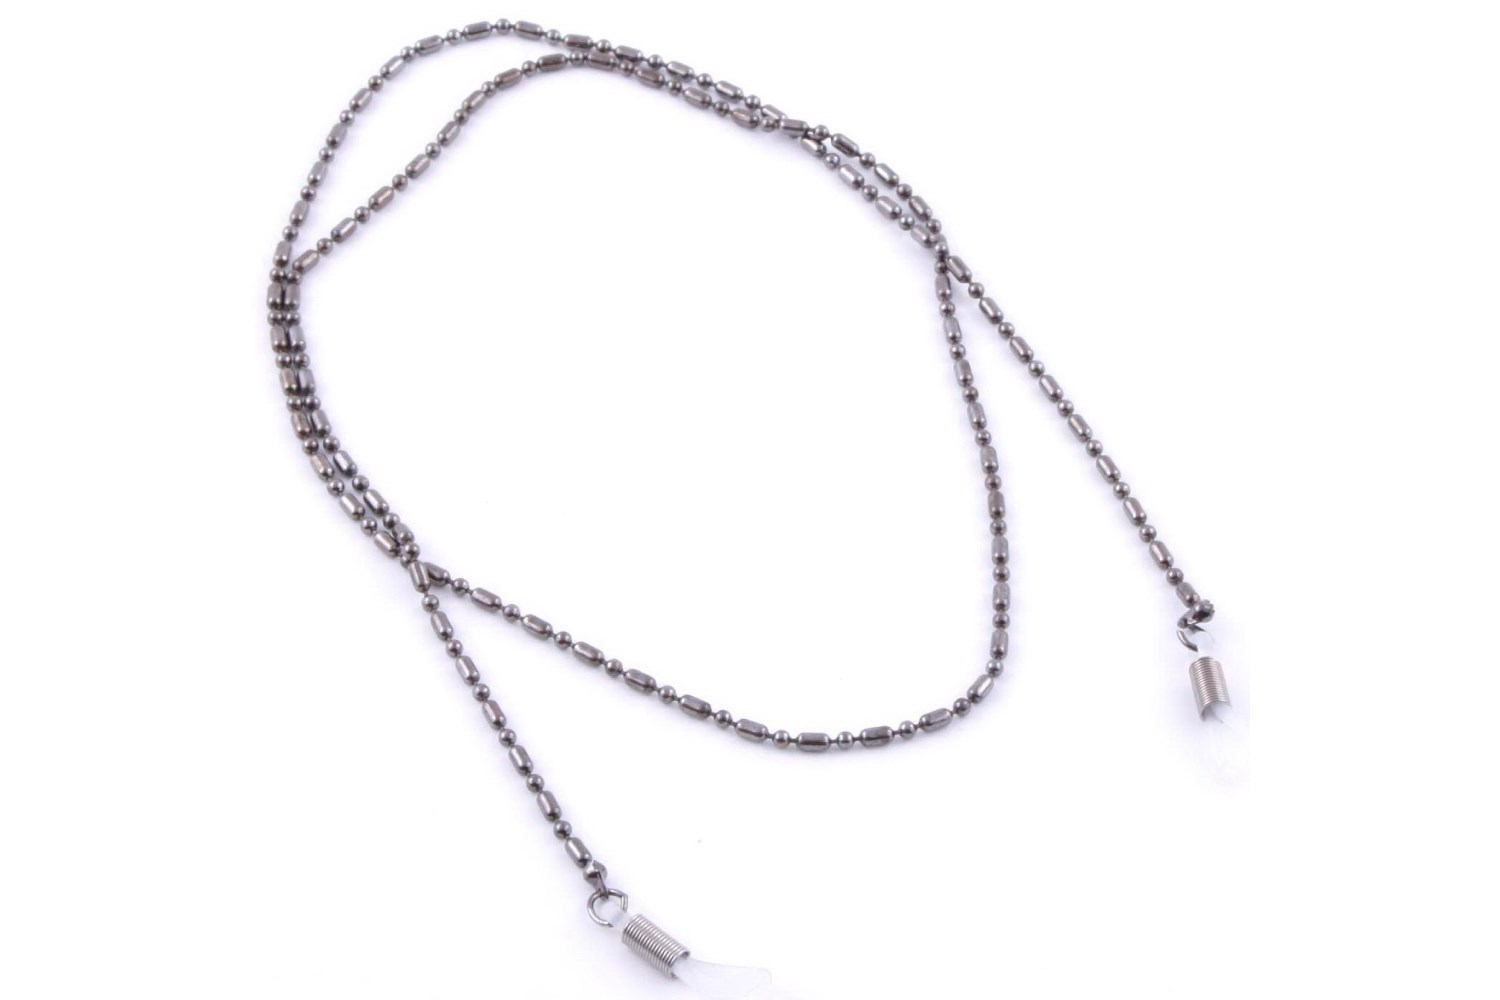 Keepers Eyeglasses Necklace Pewter